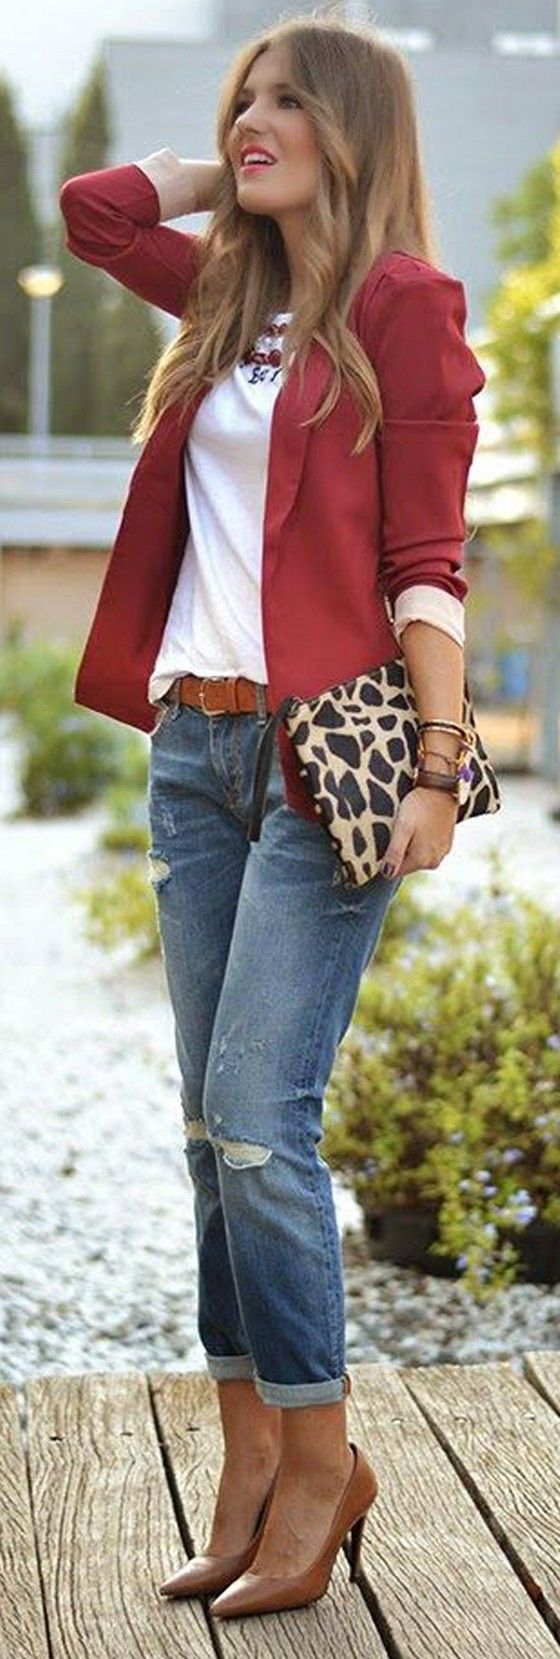 Comfy Weekend Fashion! Wine Red Plain Shawl Lapel No Button Fashion Blazer - Suits - Tops #Weekend #Casual #T_Shirt #Jeans #Sexy #Heels #Outfit #Ideas